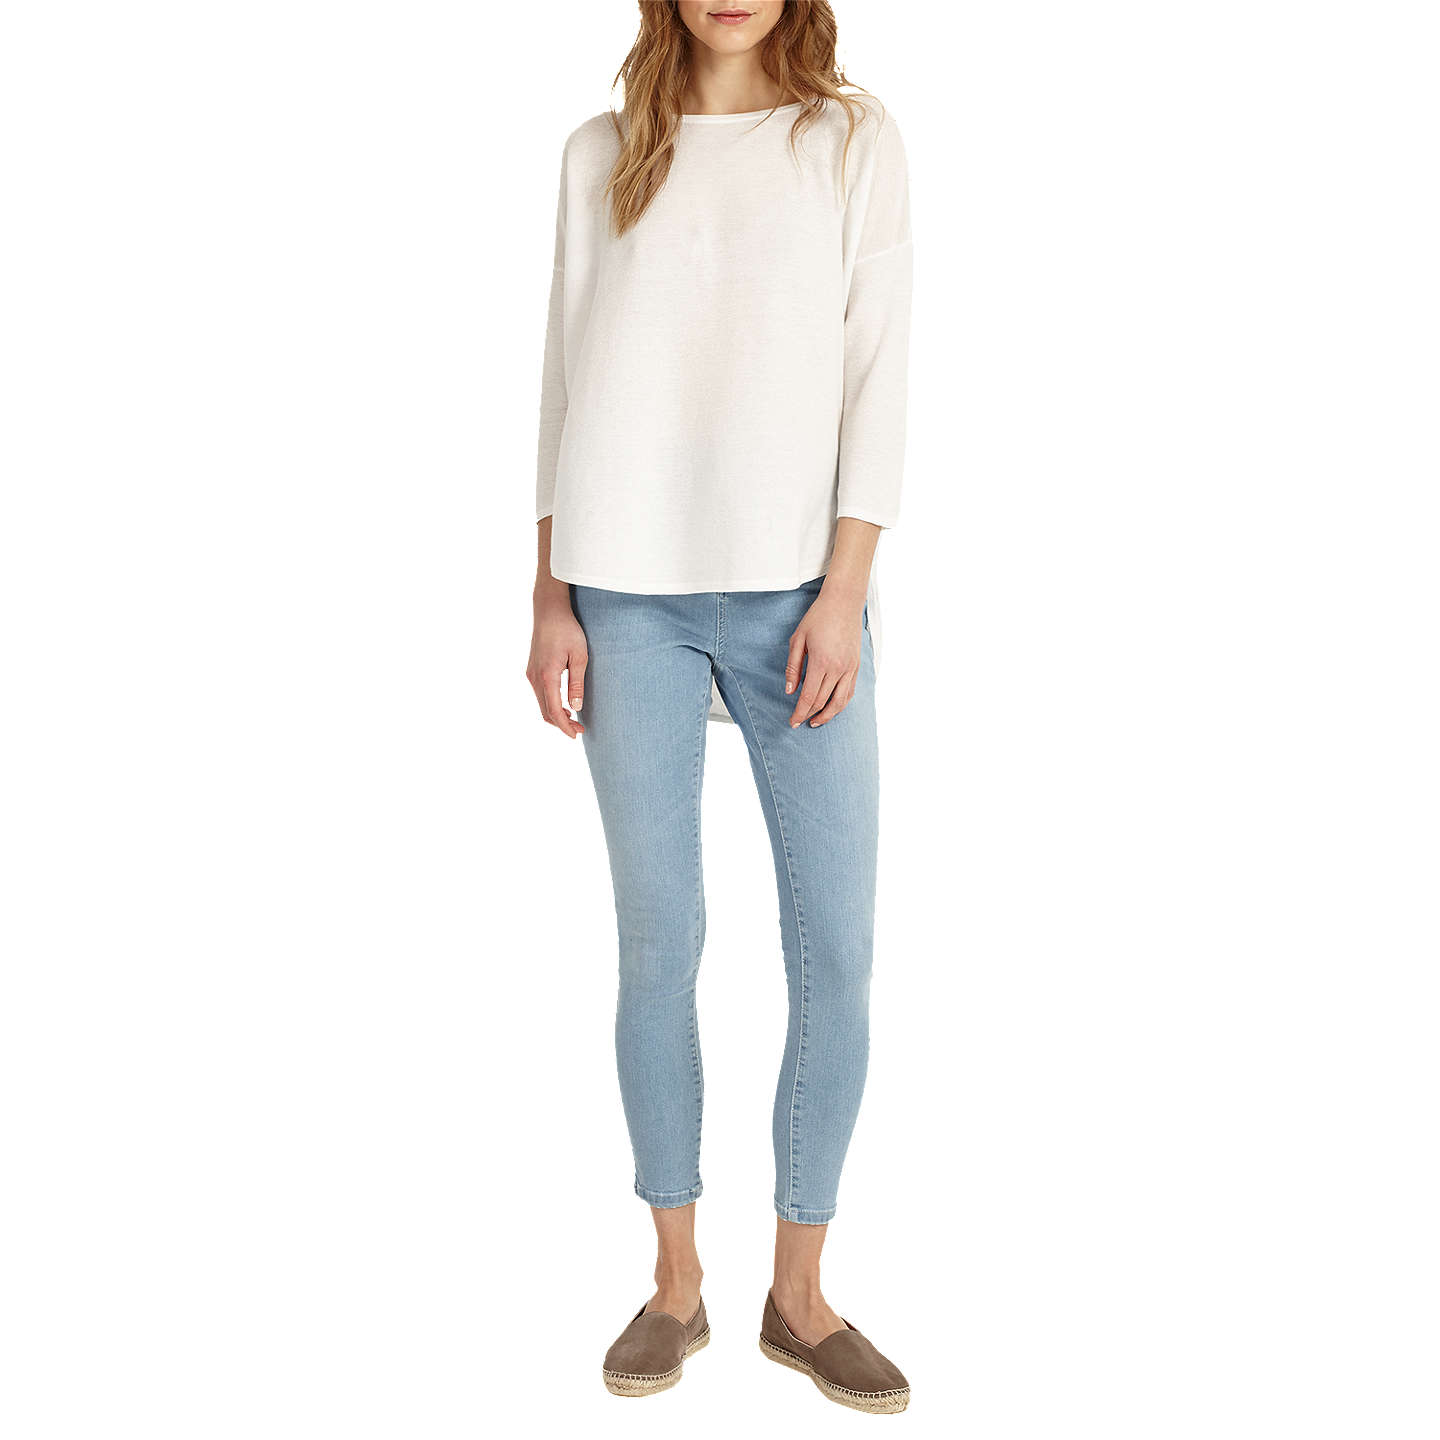 BuyPhase Eight Megg Curve Hem Jumper, Ivory, XS Online at johnlewis.com